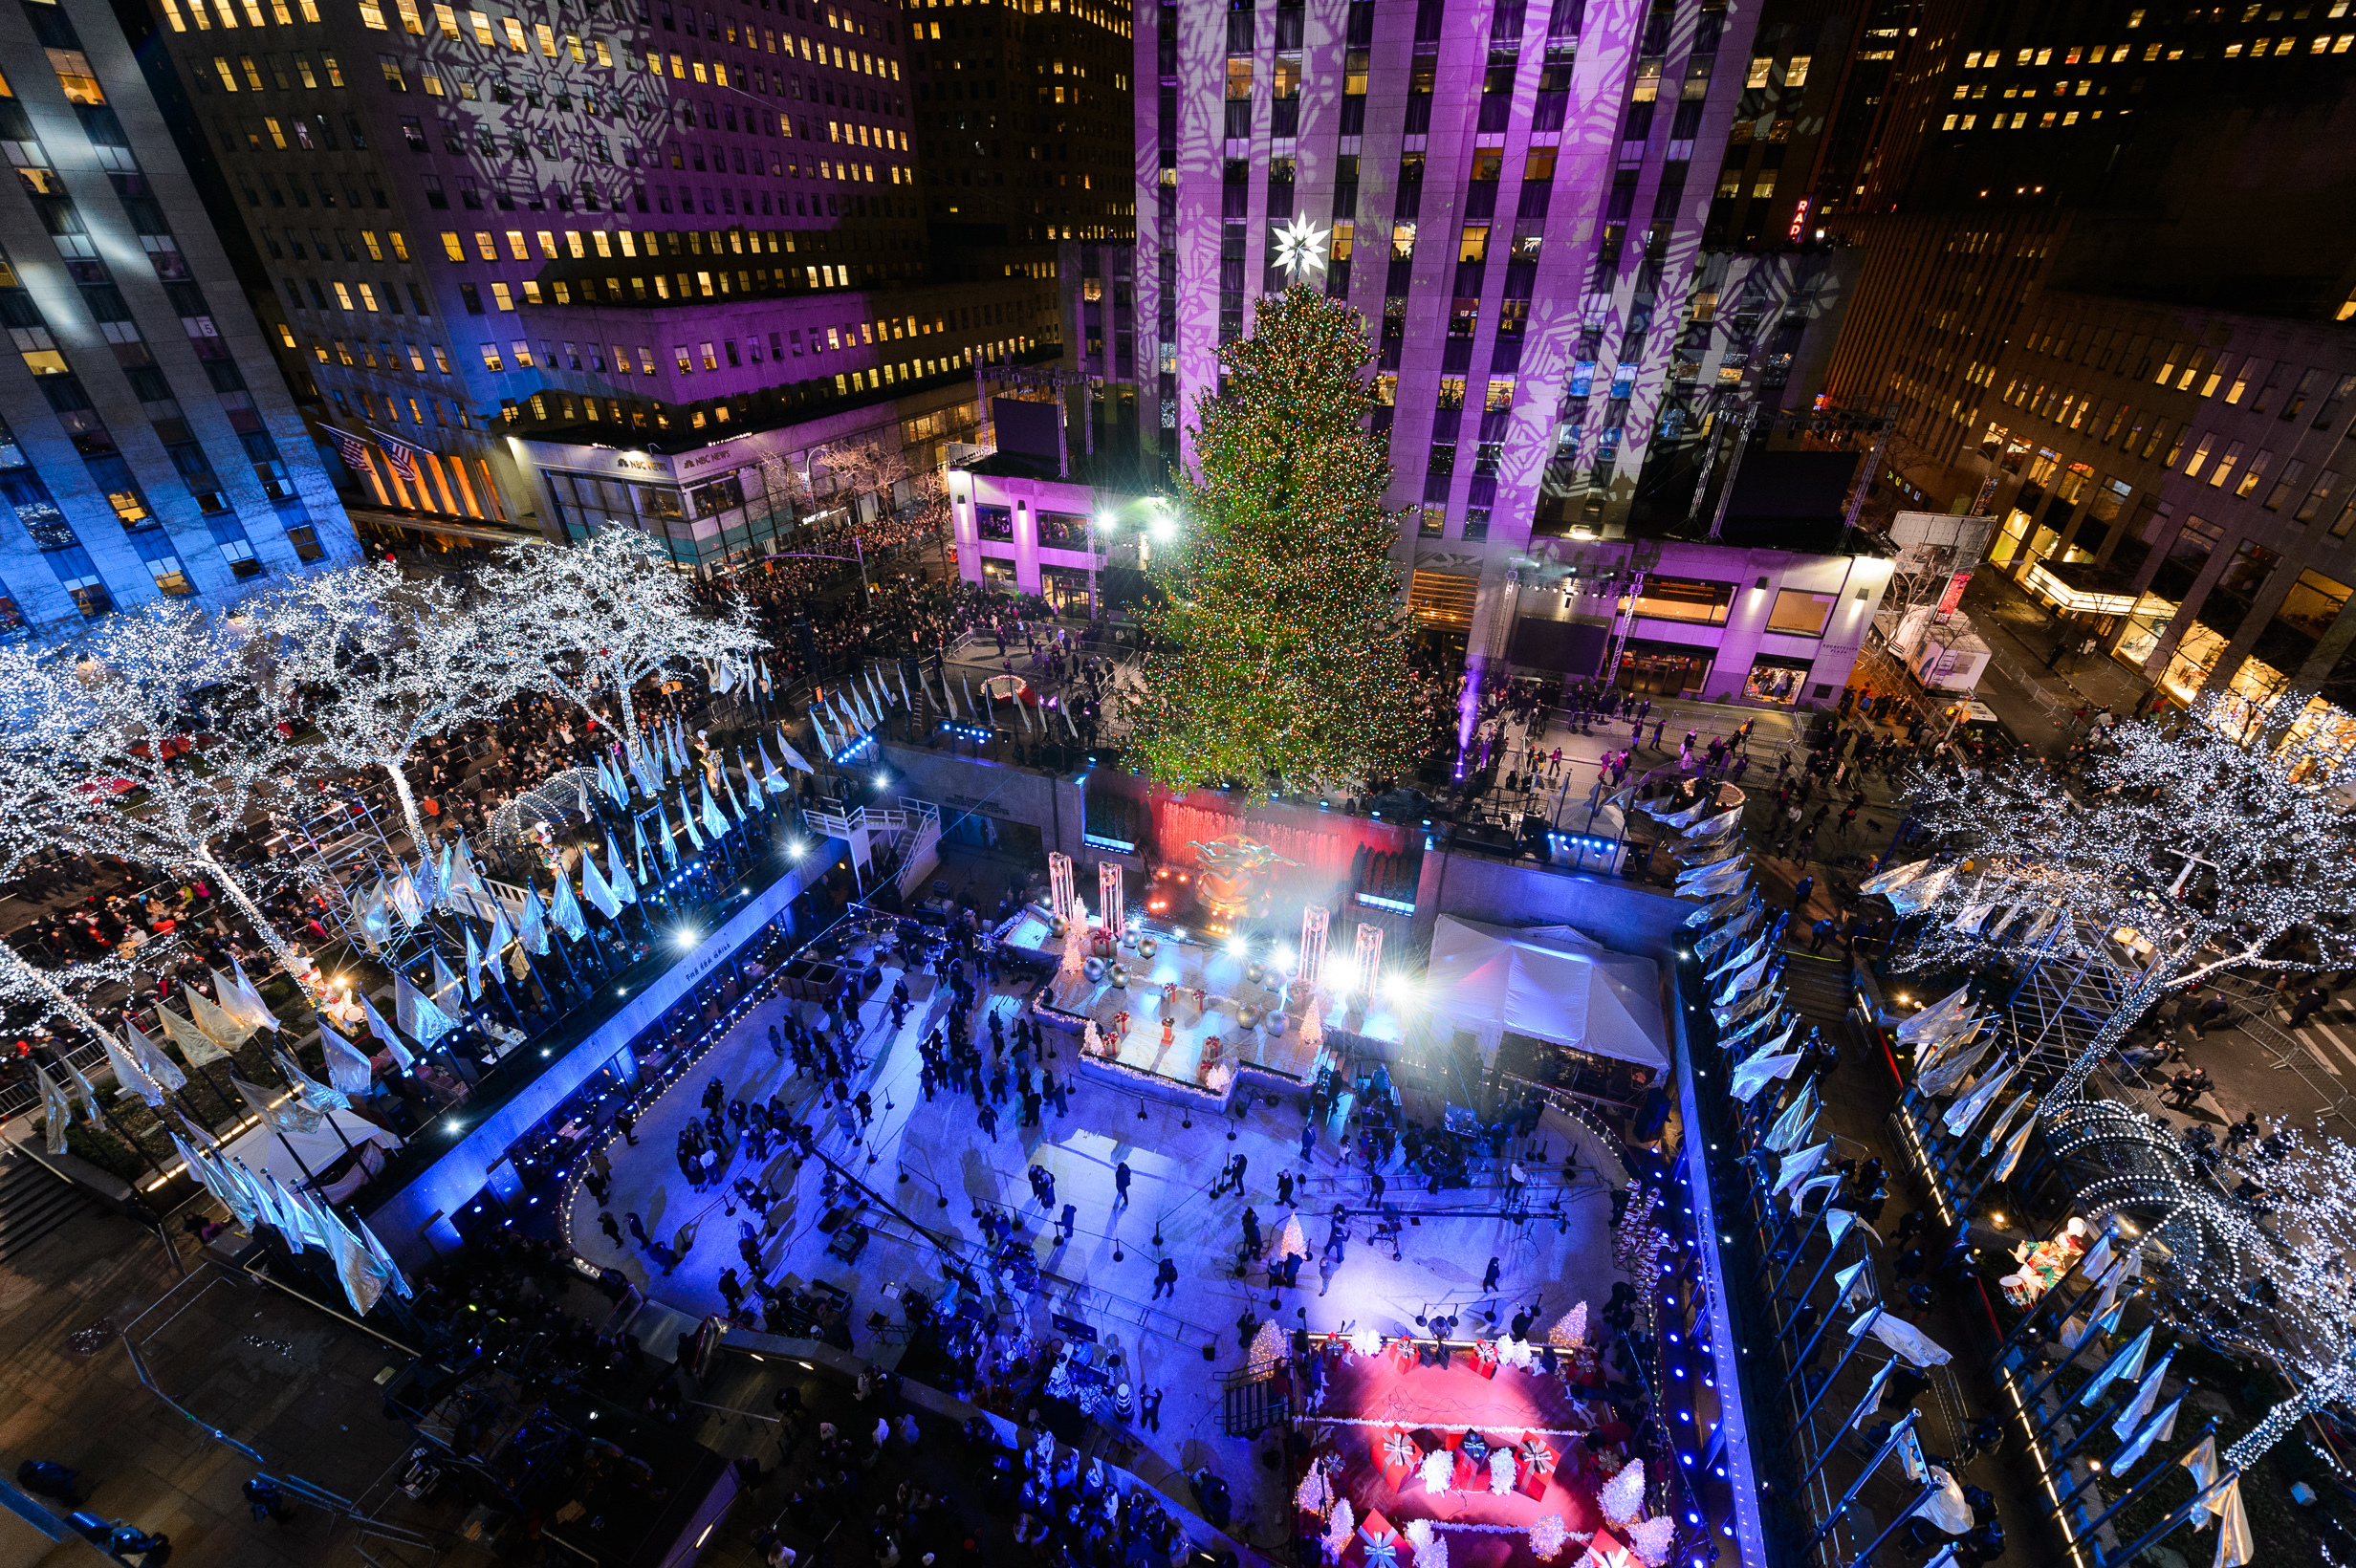 66 amazing things to do in NYC in December